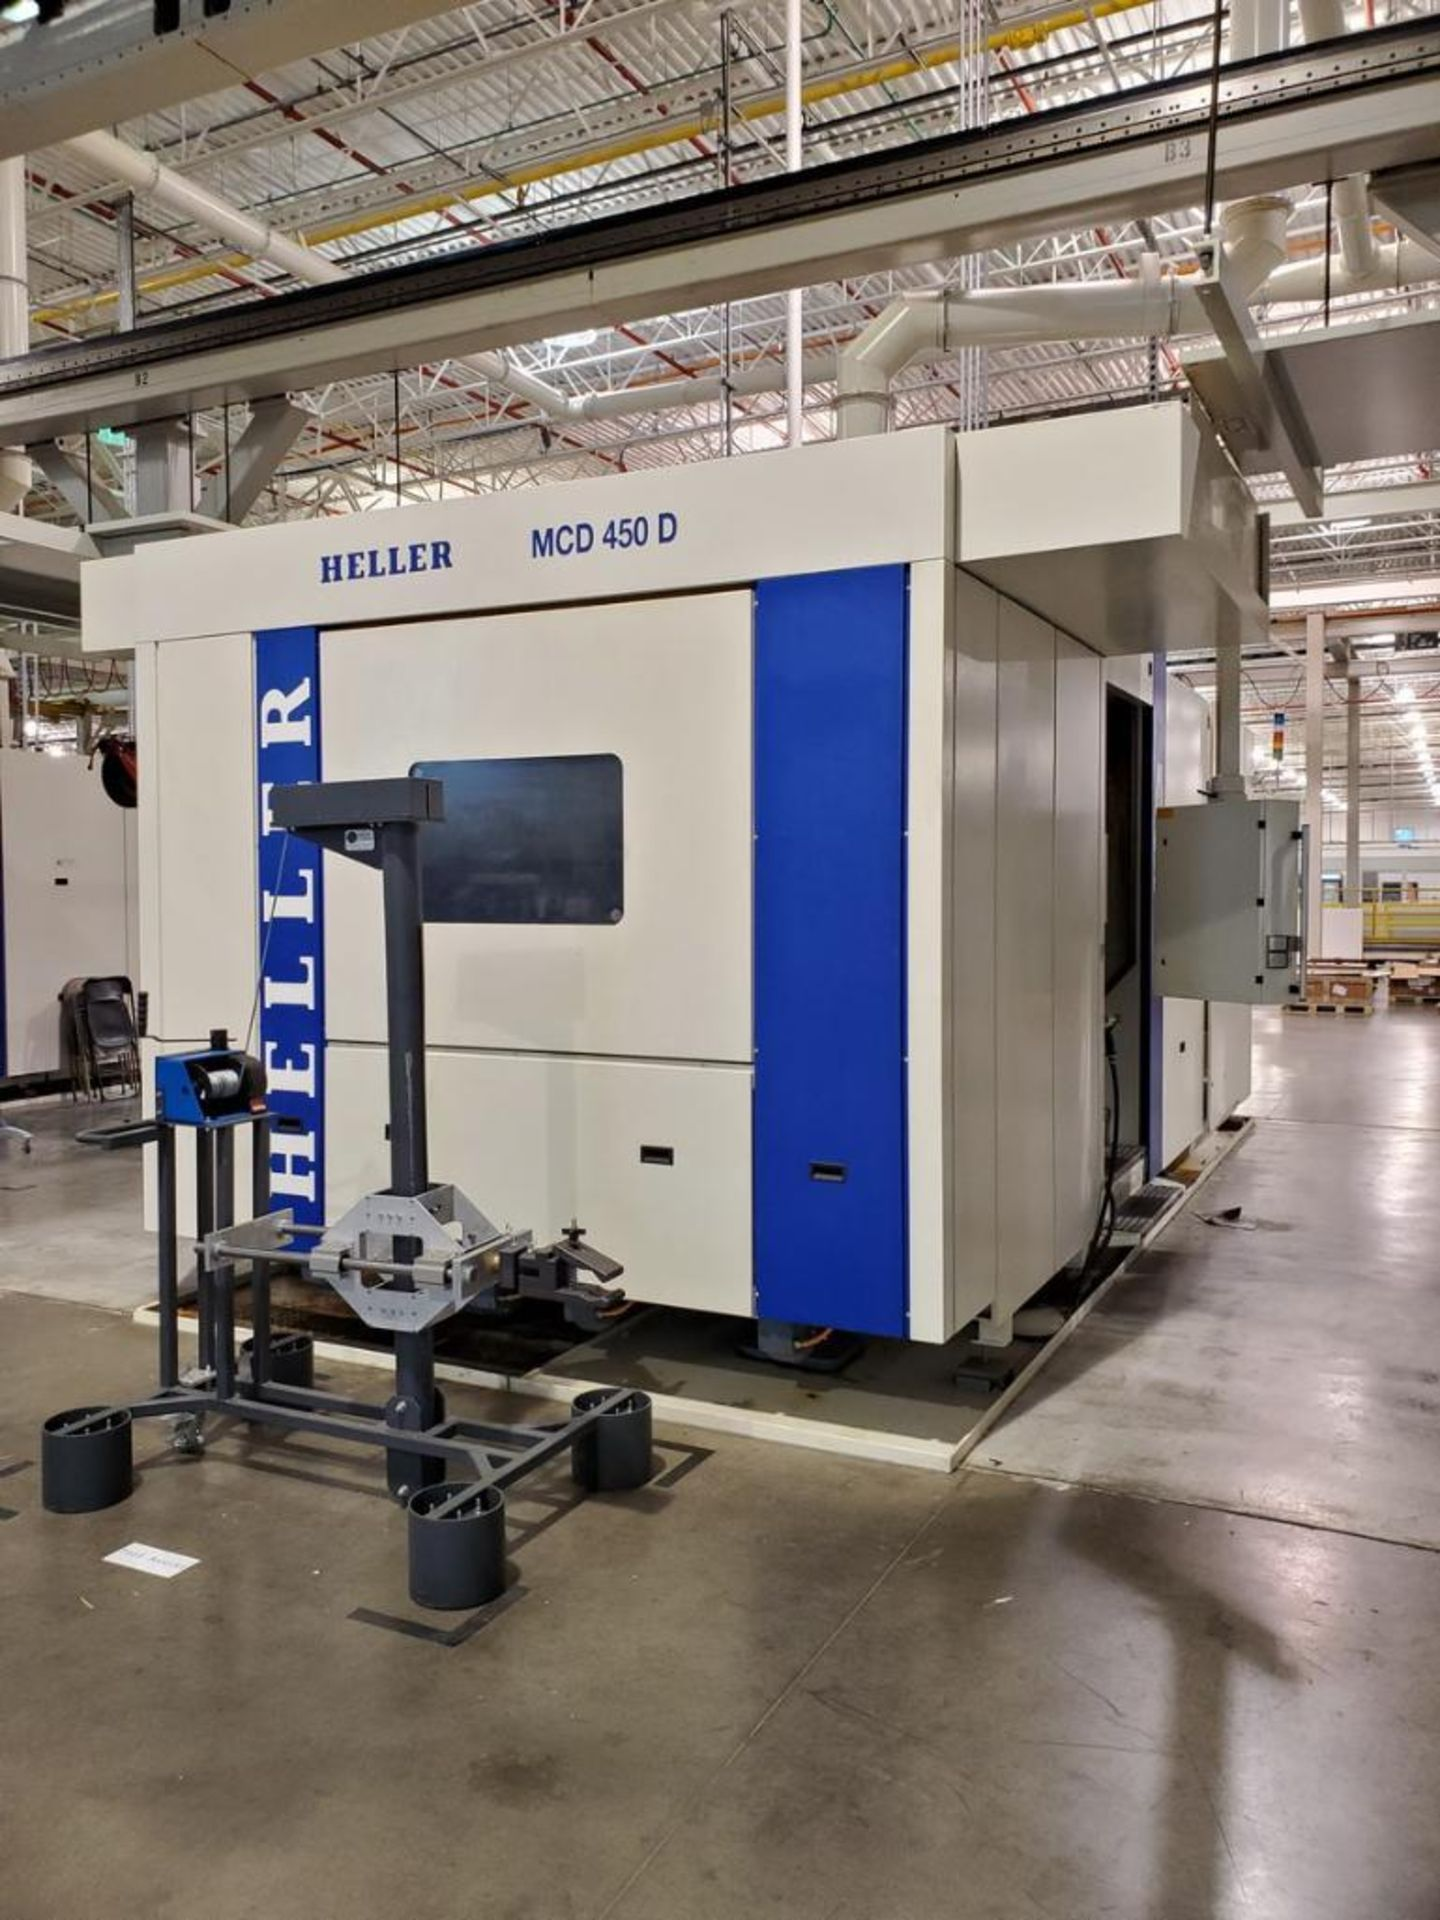 Lot 11 - 2011 Heller MCD 450 D, Horizontal Machining Center